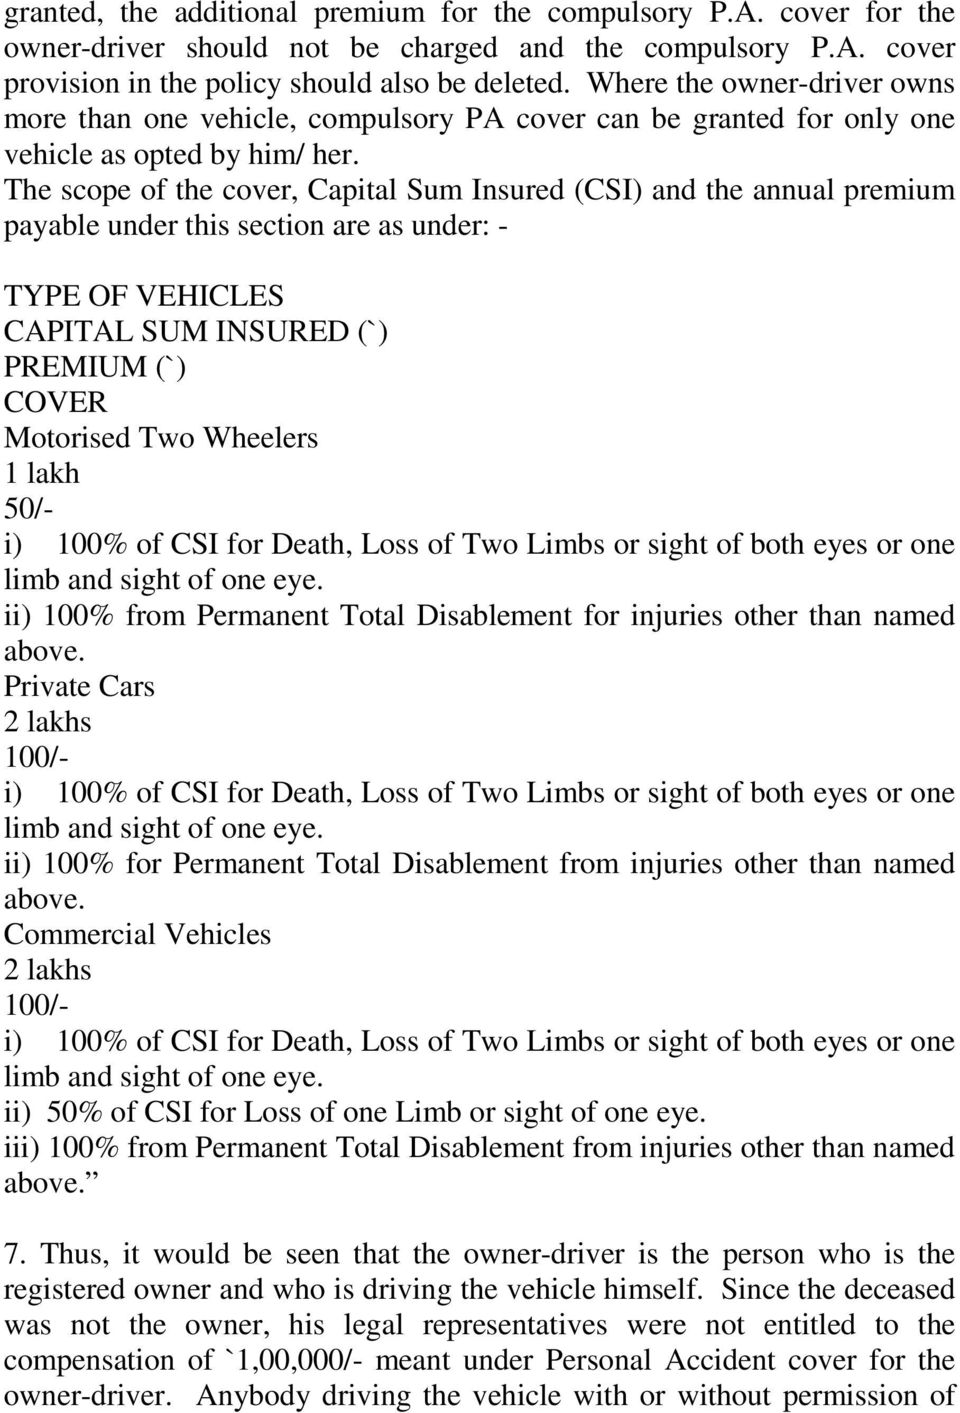 The scope of the cover, Capital Sum Insured (CSI) and the annual premium payable under this section are as under: - TYPE OF VEHICLES CAPITAL SUM INSURED (`) PREMIUM (`) COVER Motorised Two Wheelers 1